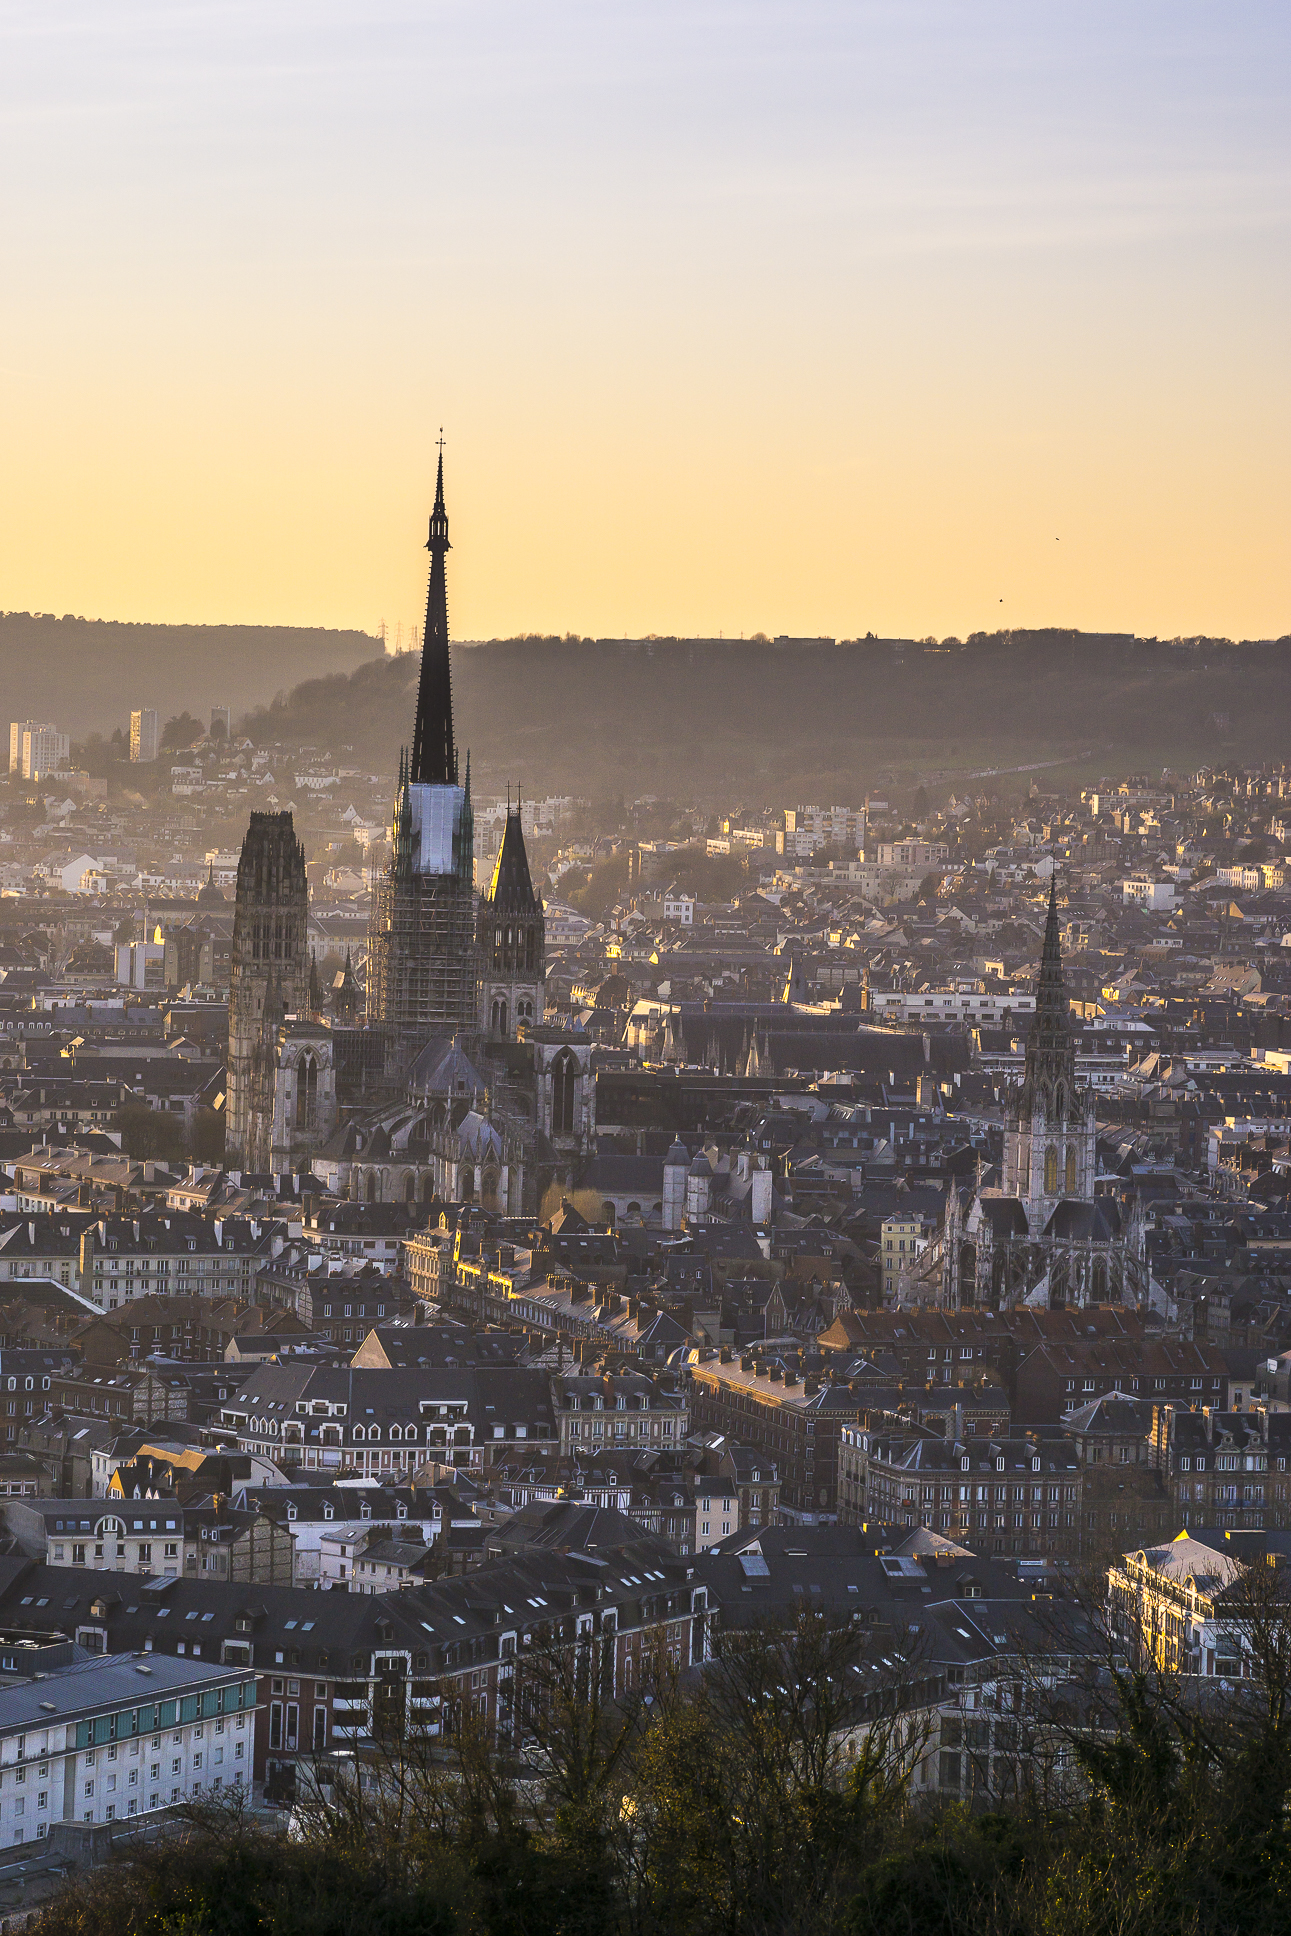 Rouen, evening on the Cathedral from Cote Sainte-Catherine